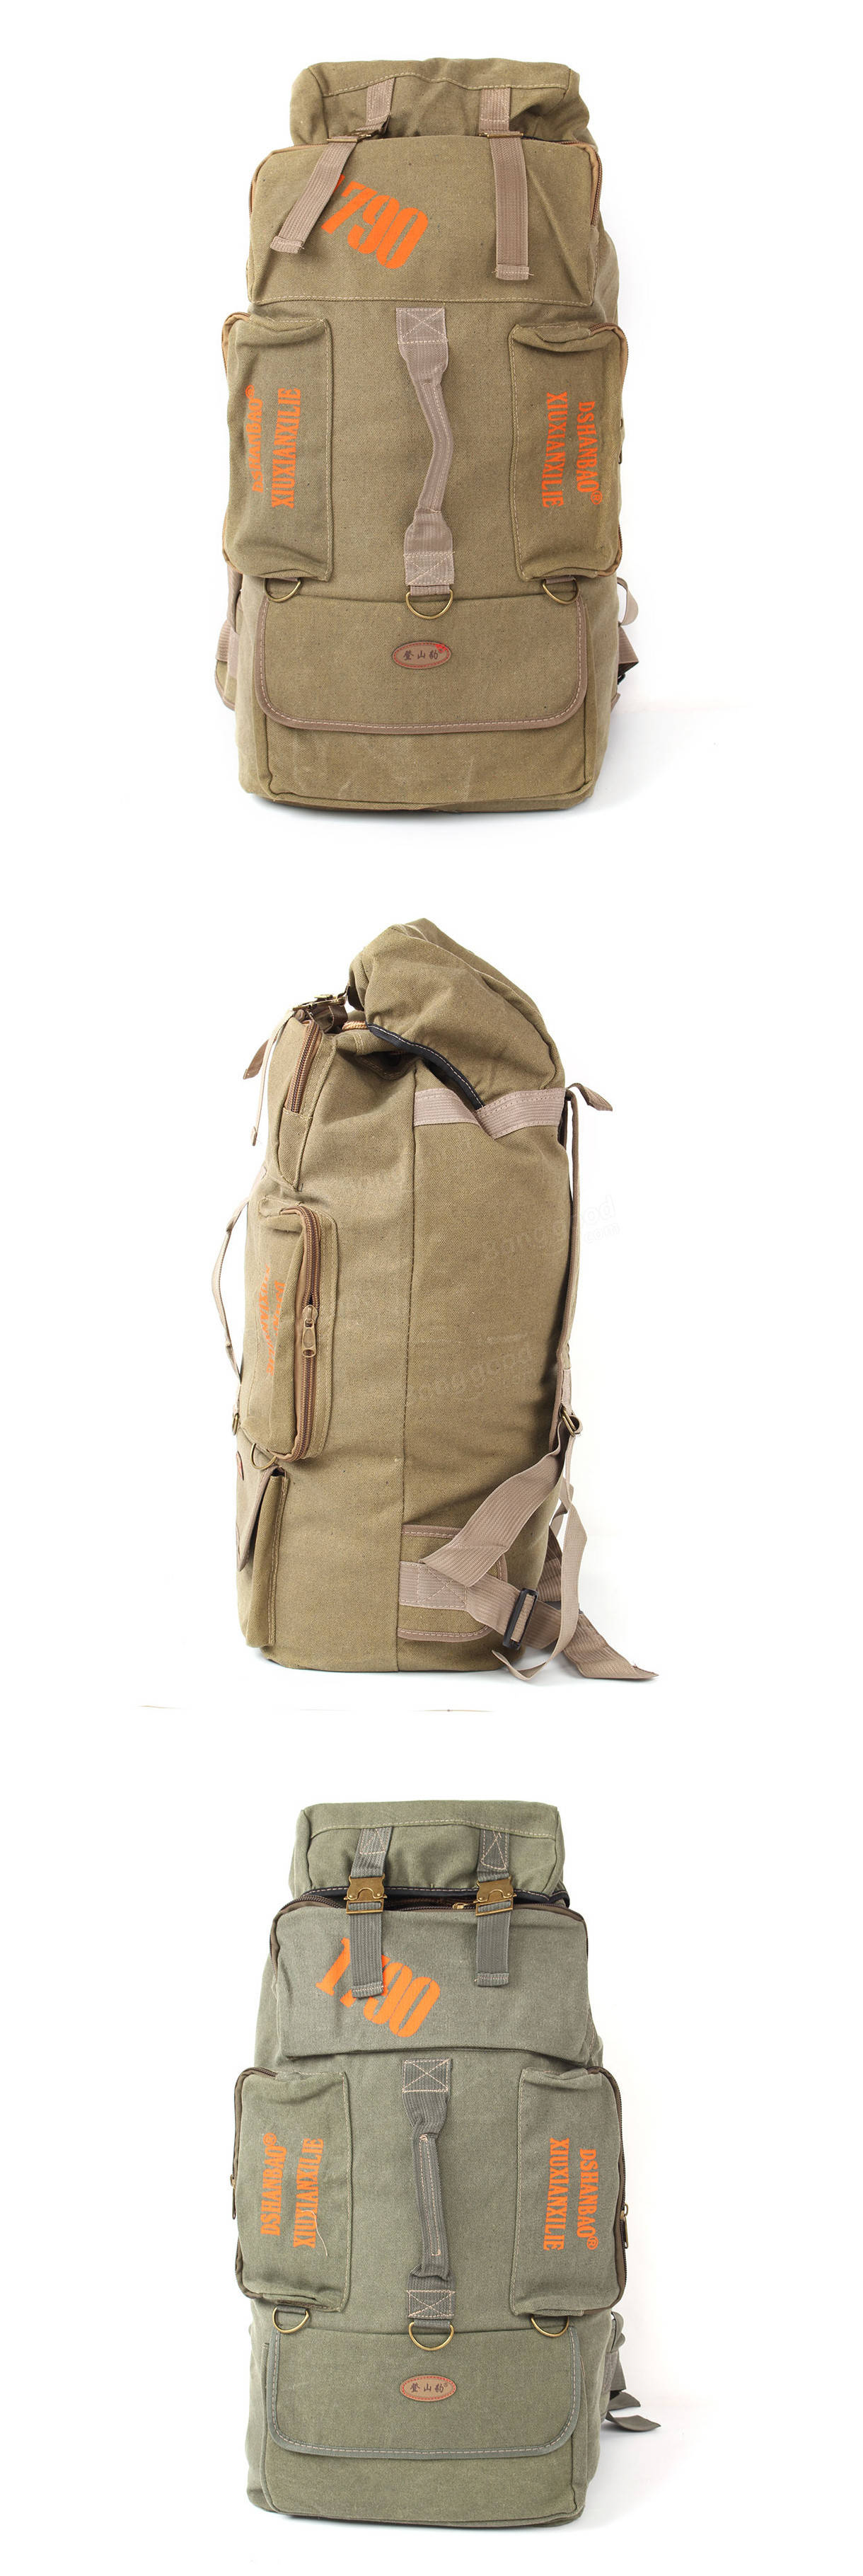 80L Camping Hiking Canvas Backpack Mountaineering Travel Rucksack ...